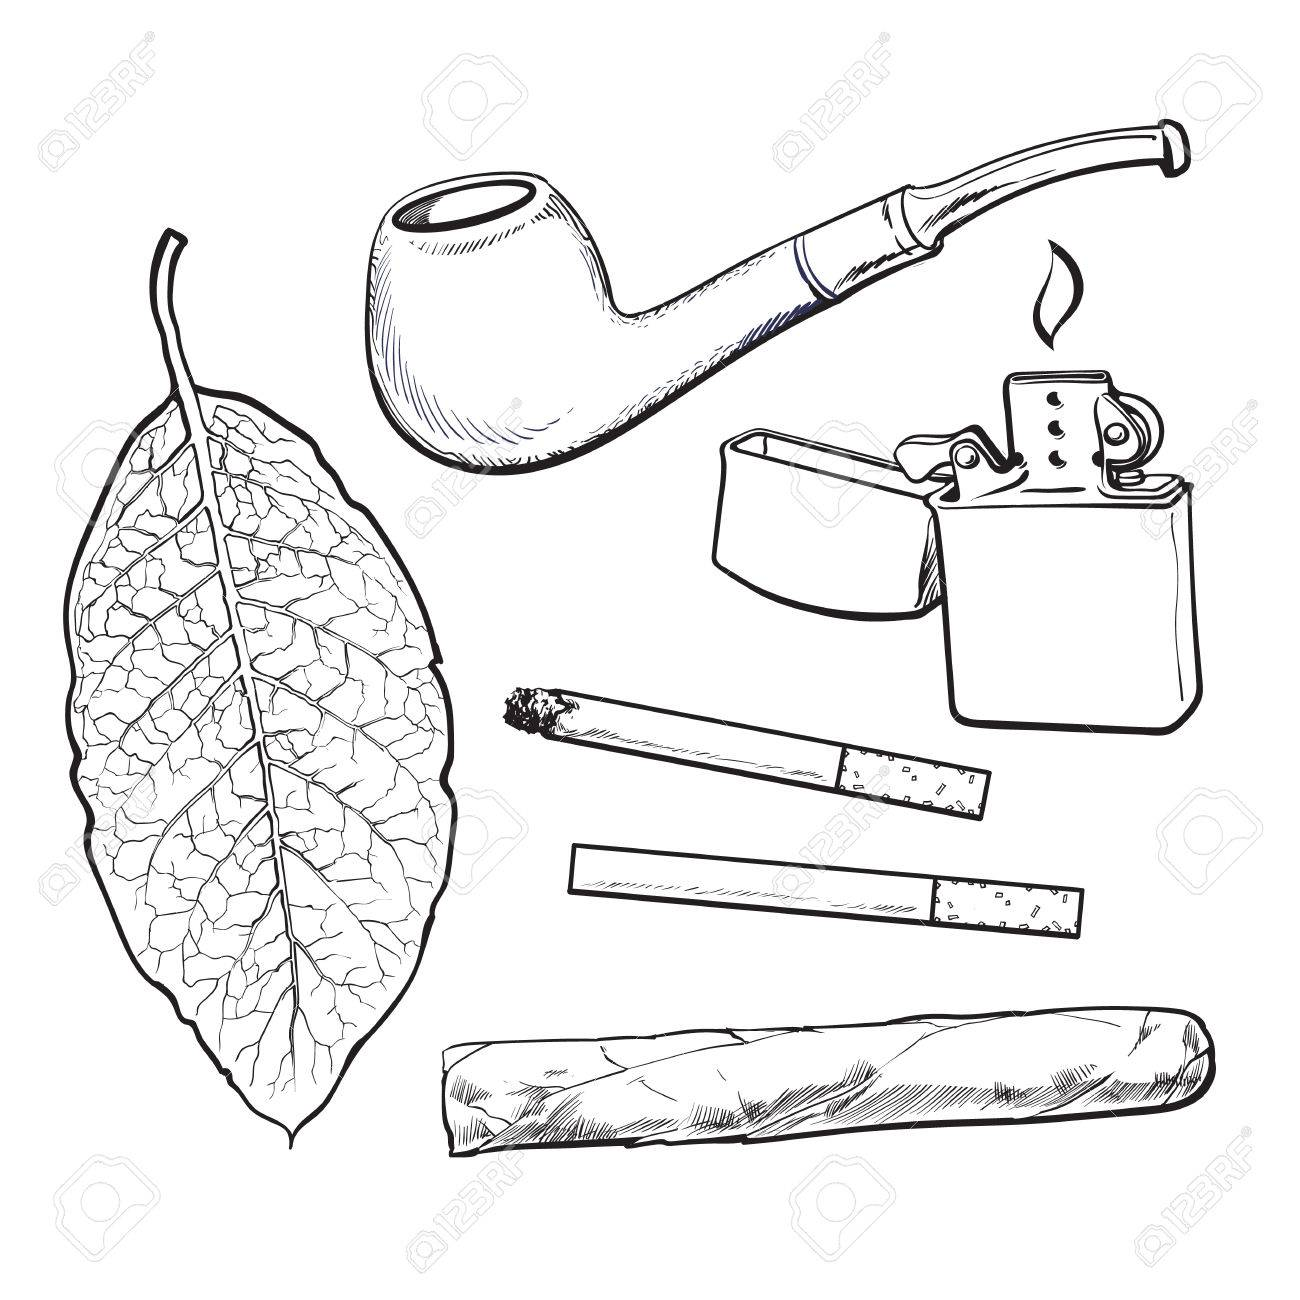 The Best Free Pipe Drawing Images Download From 370 Free